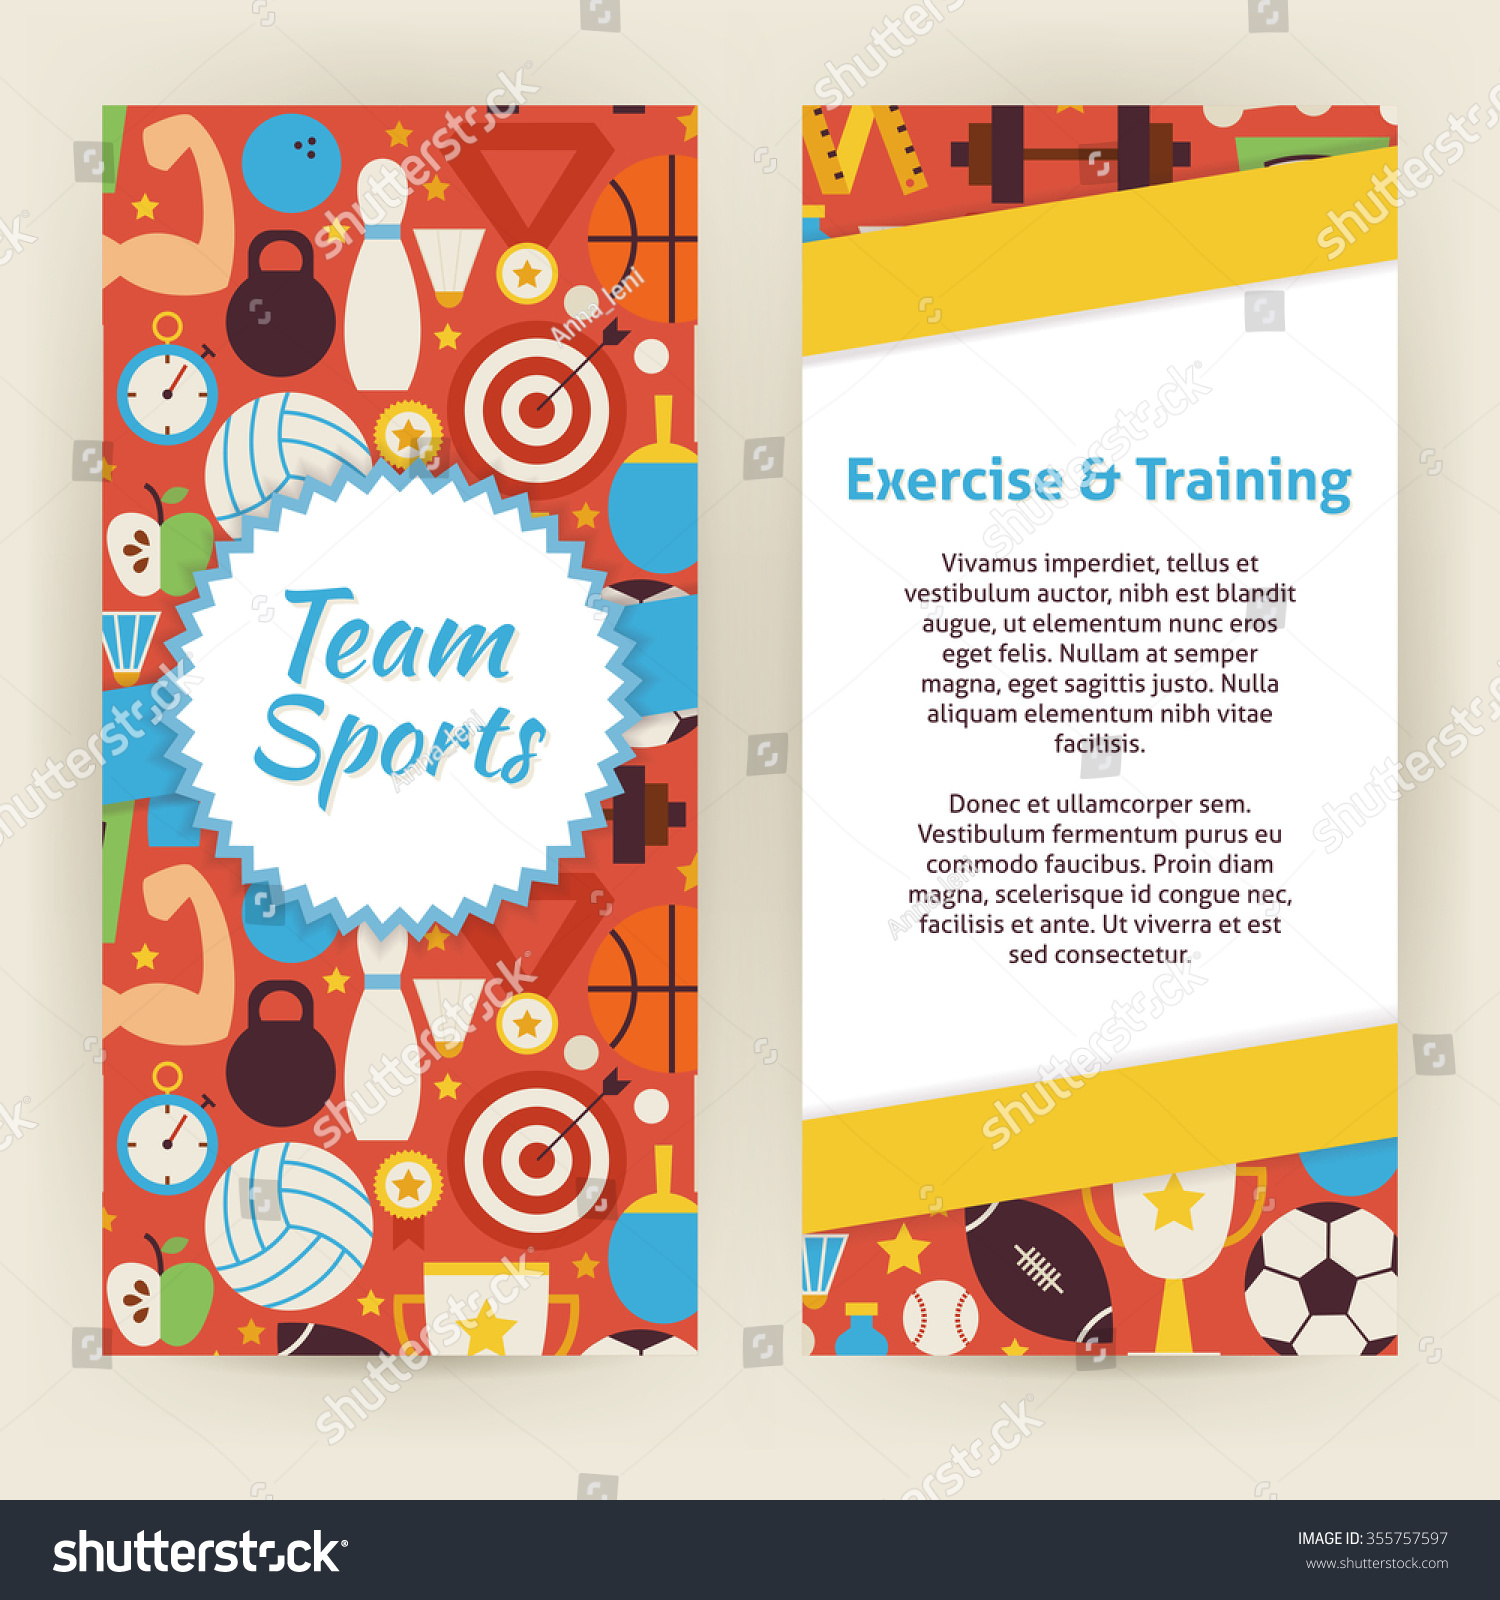 flyer template exercise training sport objects stock vector flyer template of exercise and training sport objects and elements flat style design vector illustration